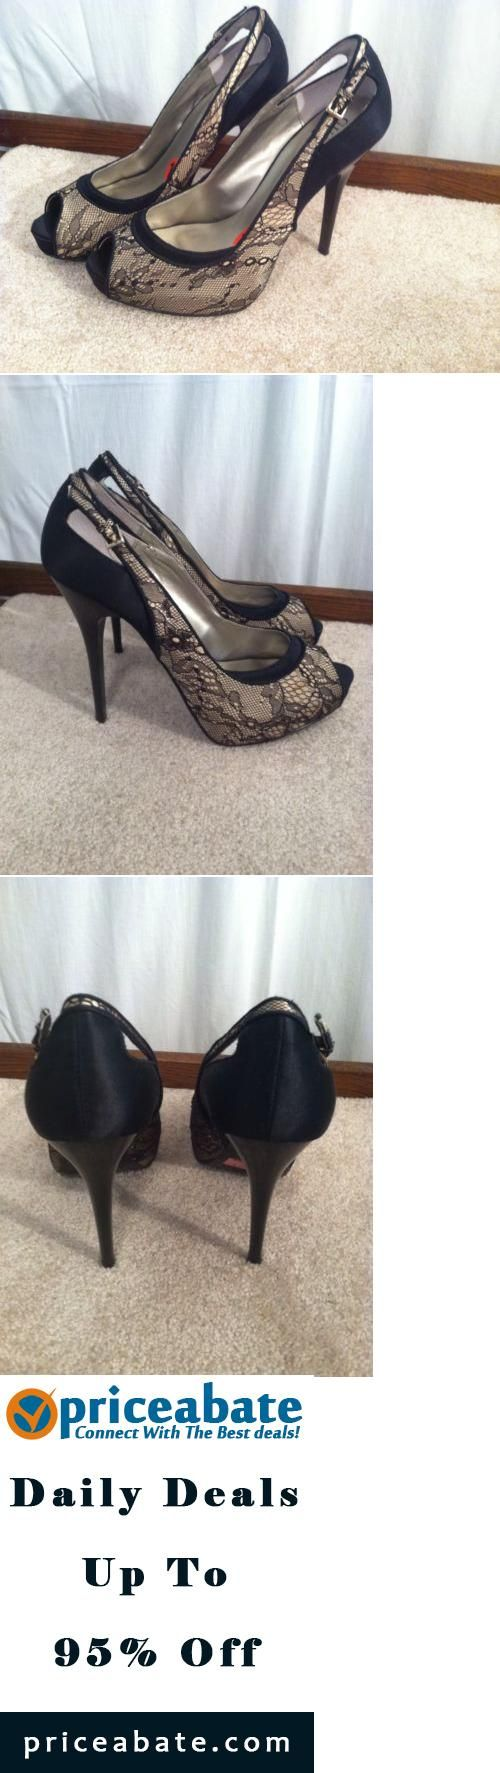 #priceabatedeals guess shoes size 10 - Buy This Item Now For Only: $29.99